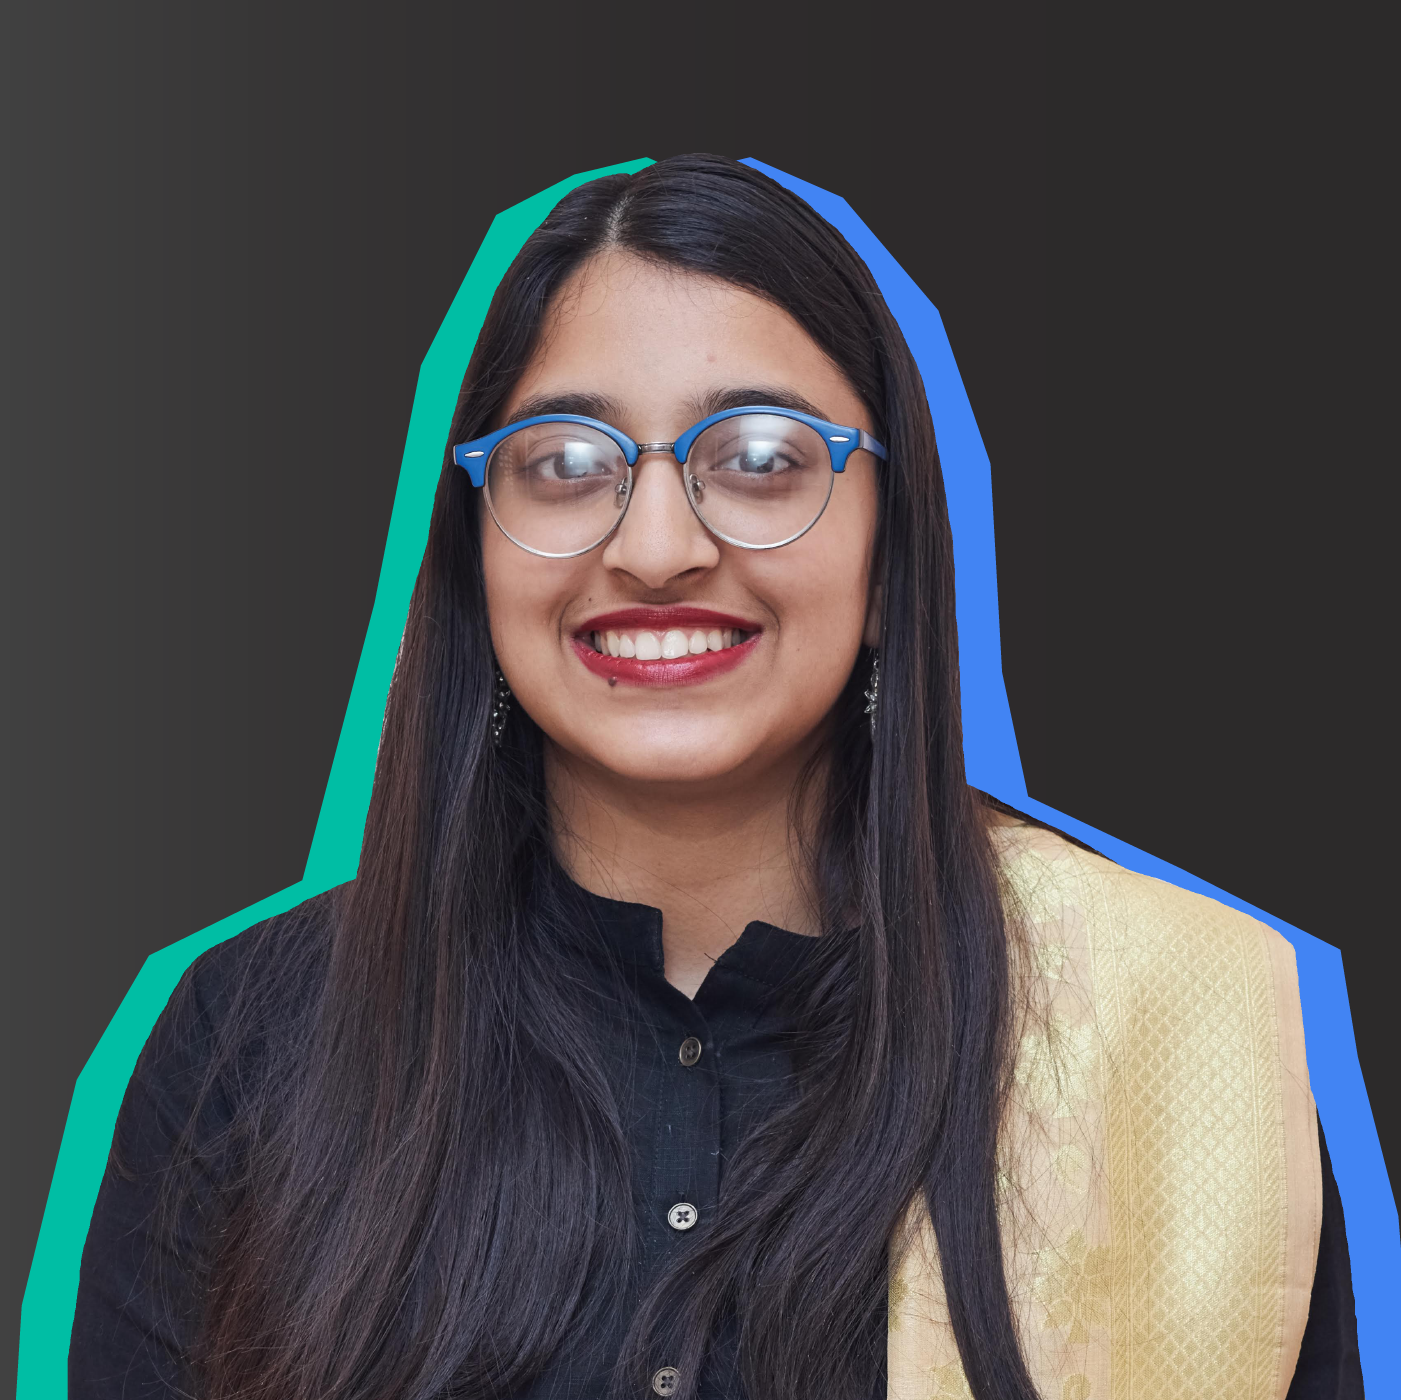 Sanskriti, CEO & Co-Founder of Thinkerbell Labs